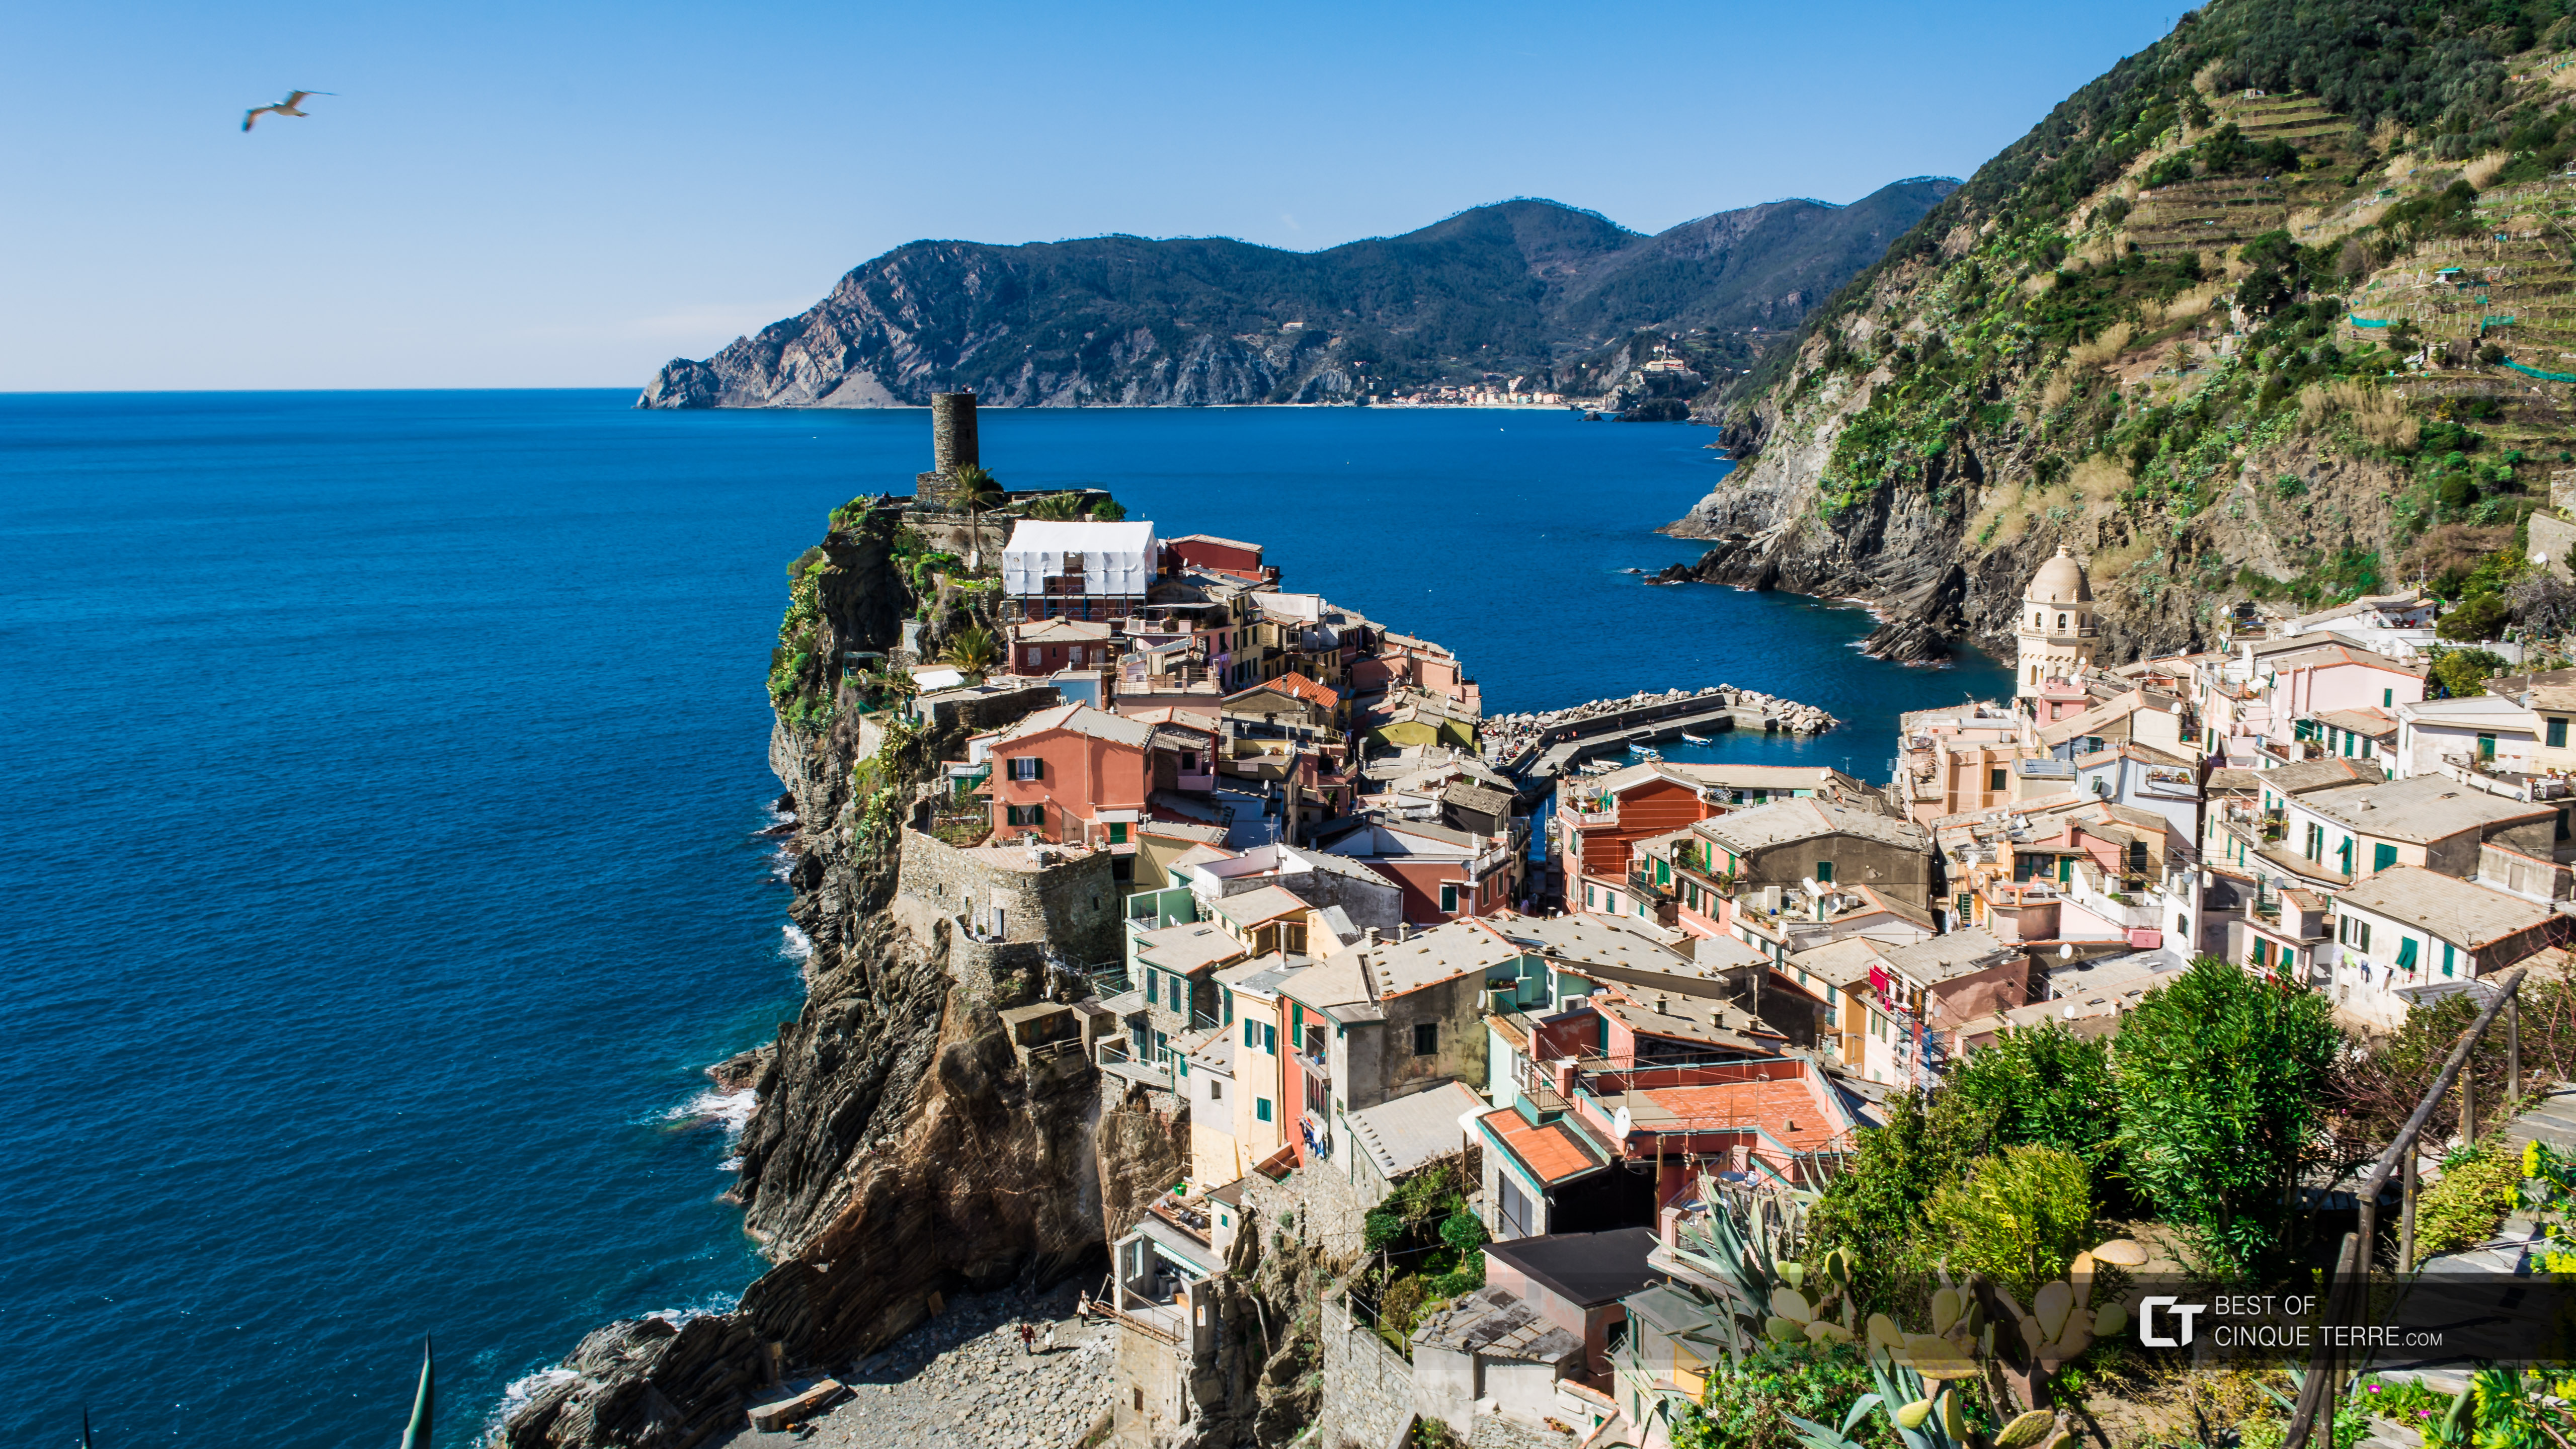 Panoramic view of the village from the Blue Trail, Vernazza, Cinque Terre, Italy